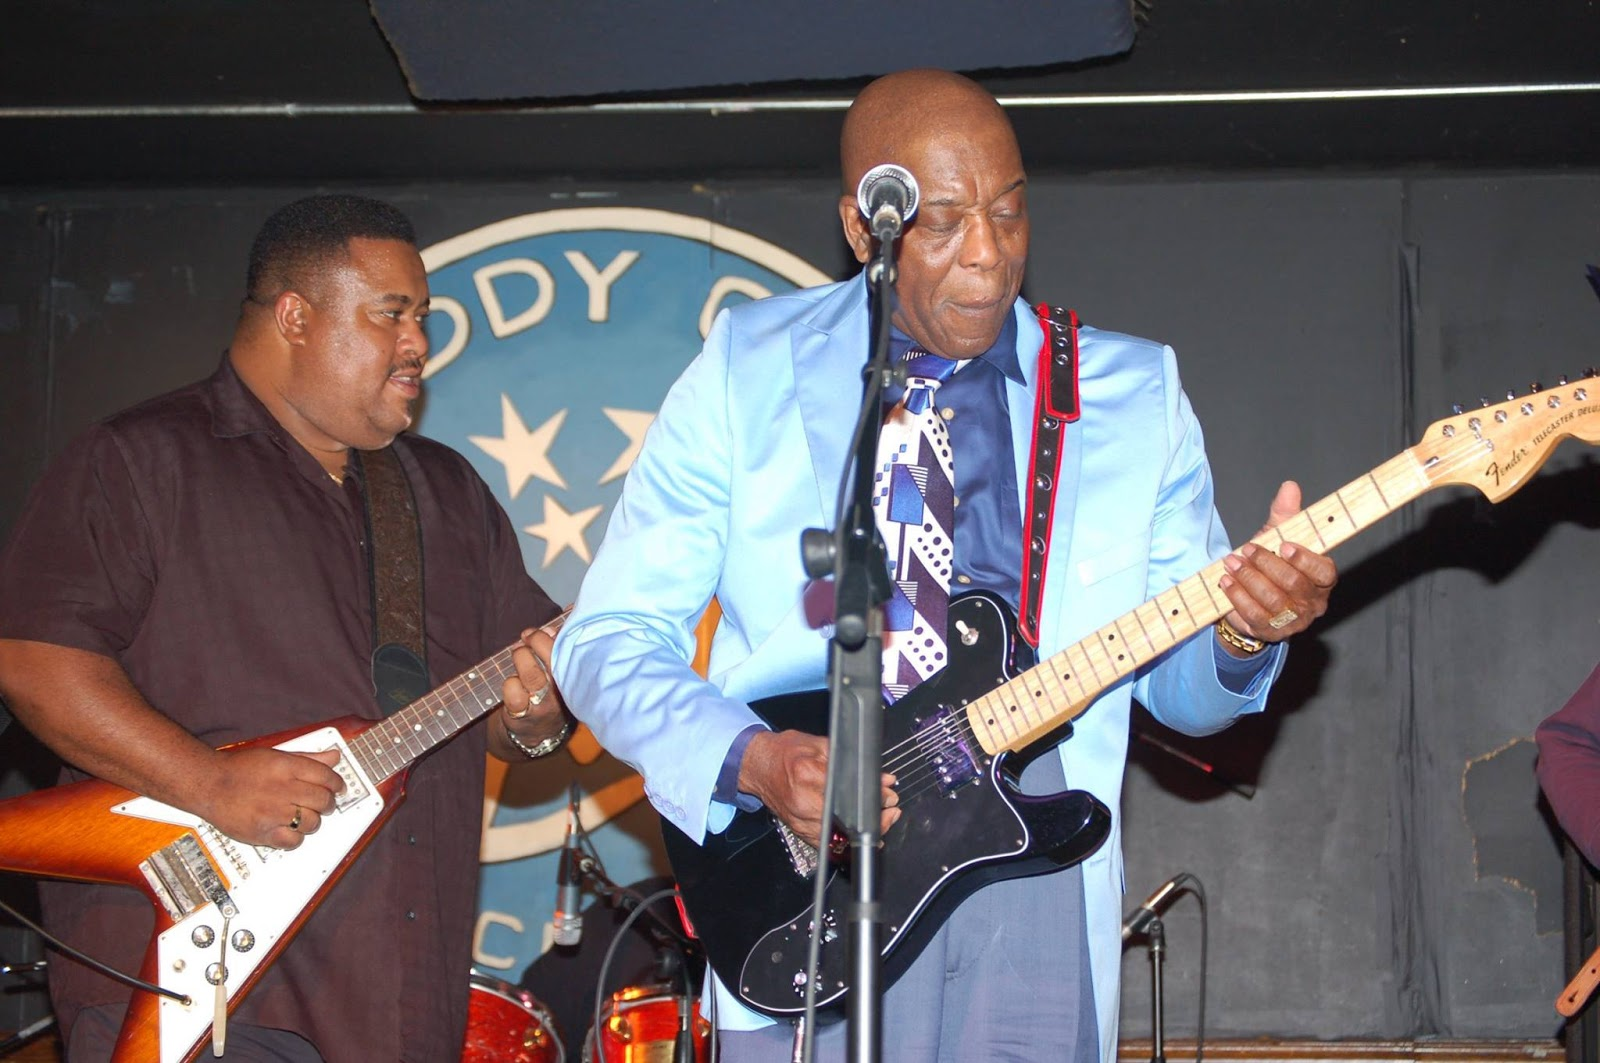 The Classic Rock Music Reporter Larry Mccray Blues Singer And Guitar Legend In The Making Exclusive Interview